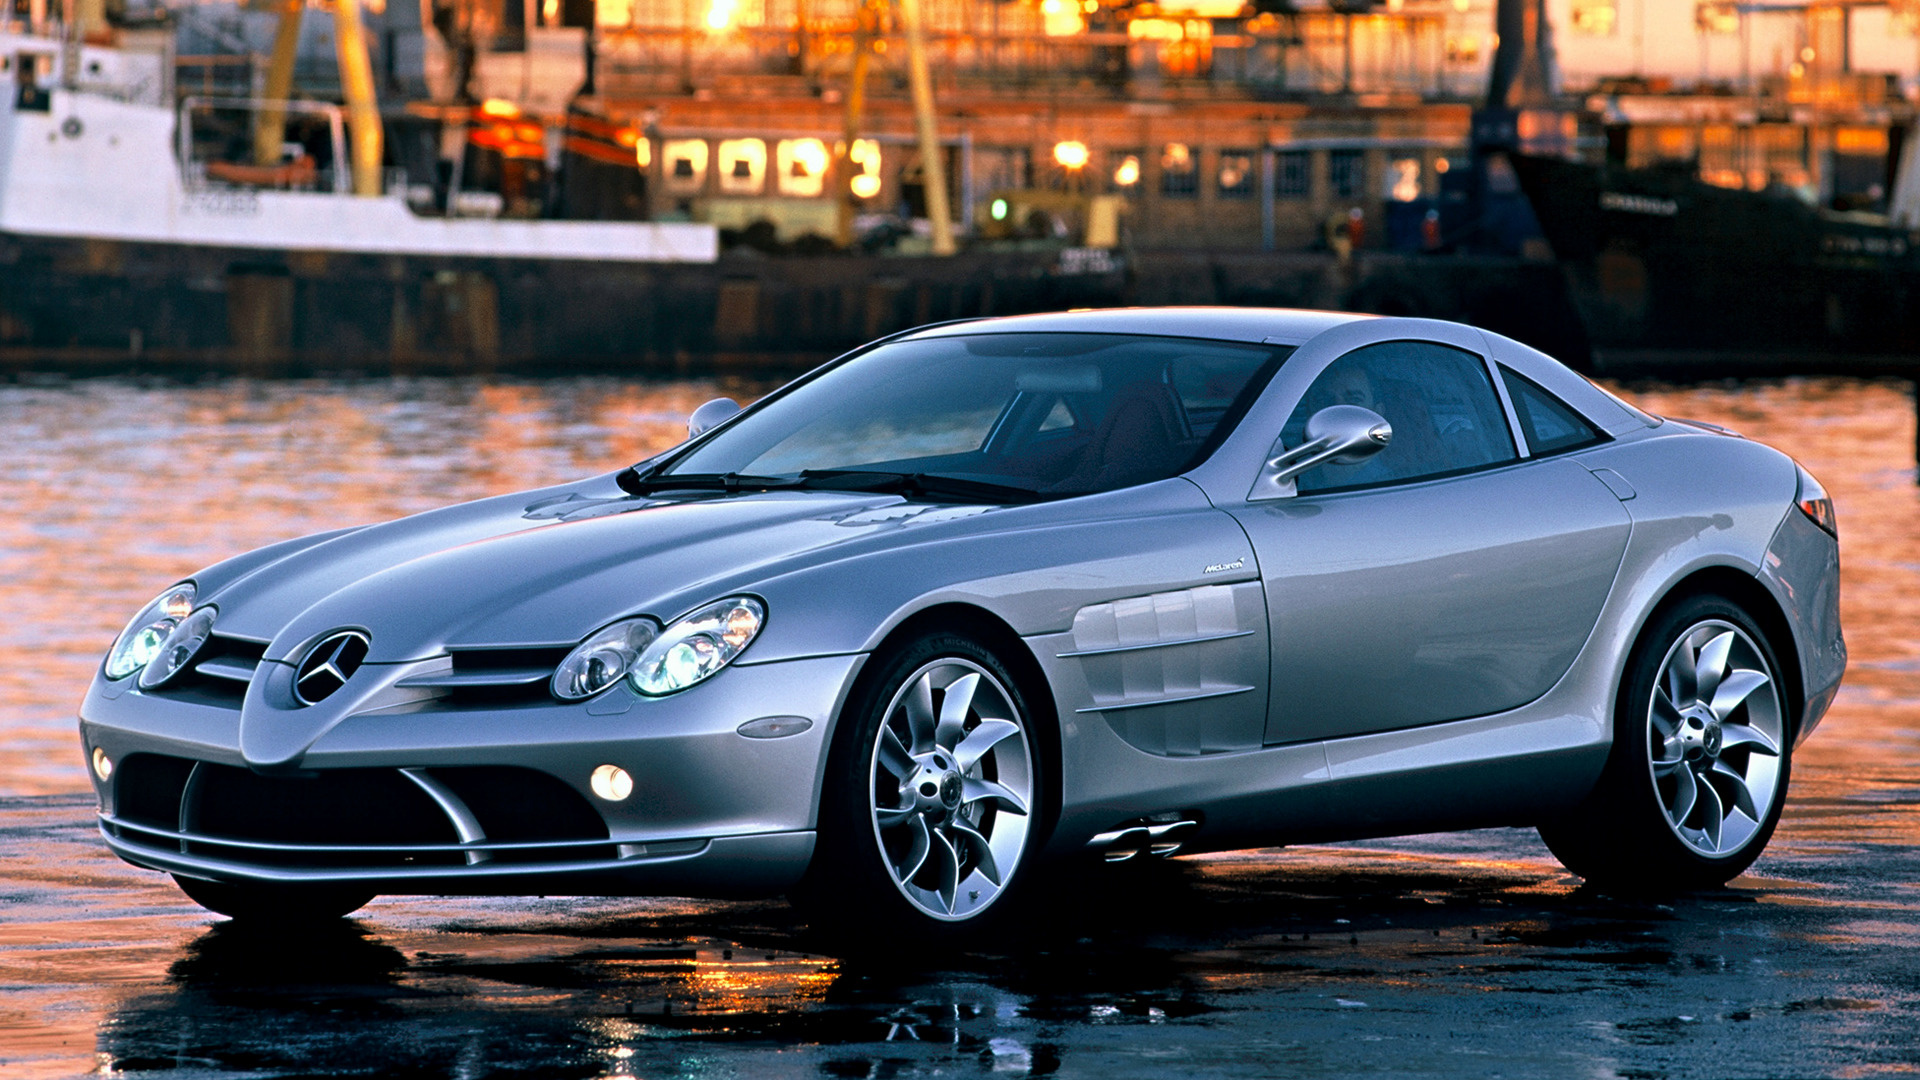 Mercedes Benz Slr Mclaren 2003 Wallpapers And Hd Images Car Pixel